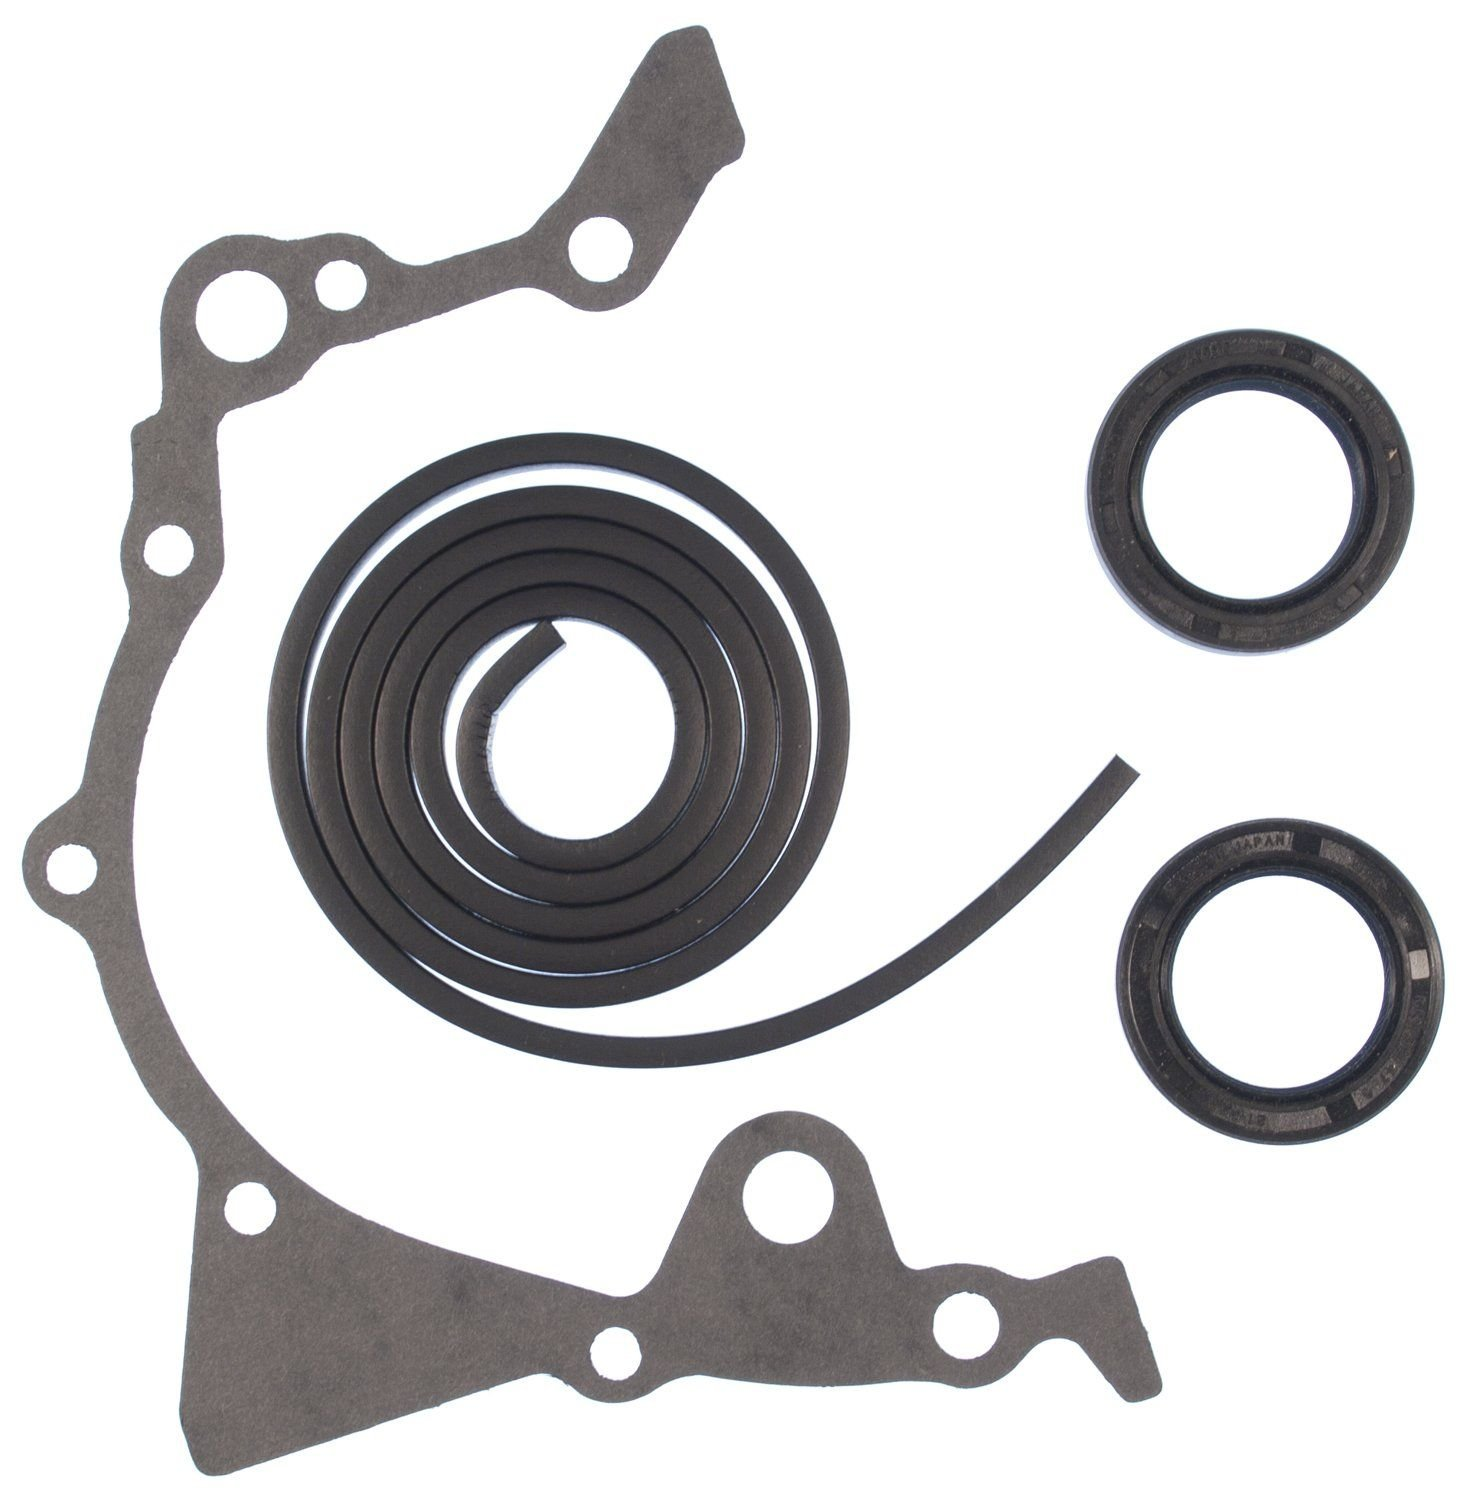 Engine Timing Cover Gasket Set Replacement (Apex, Beck